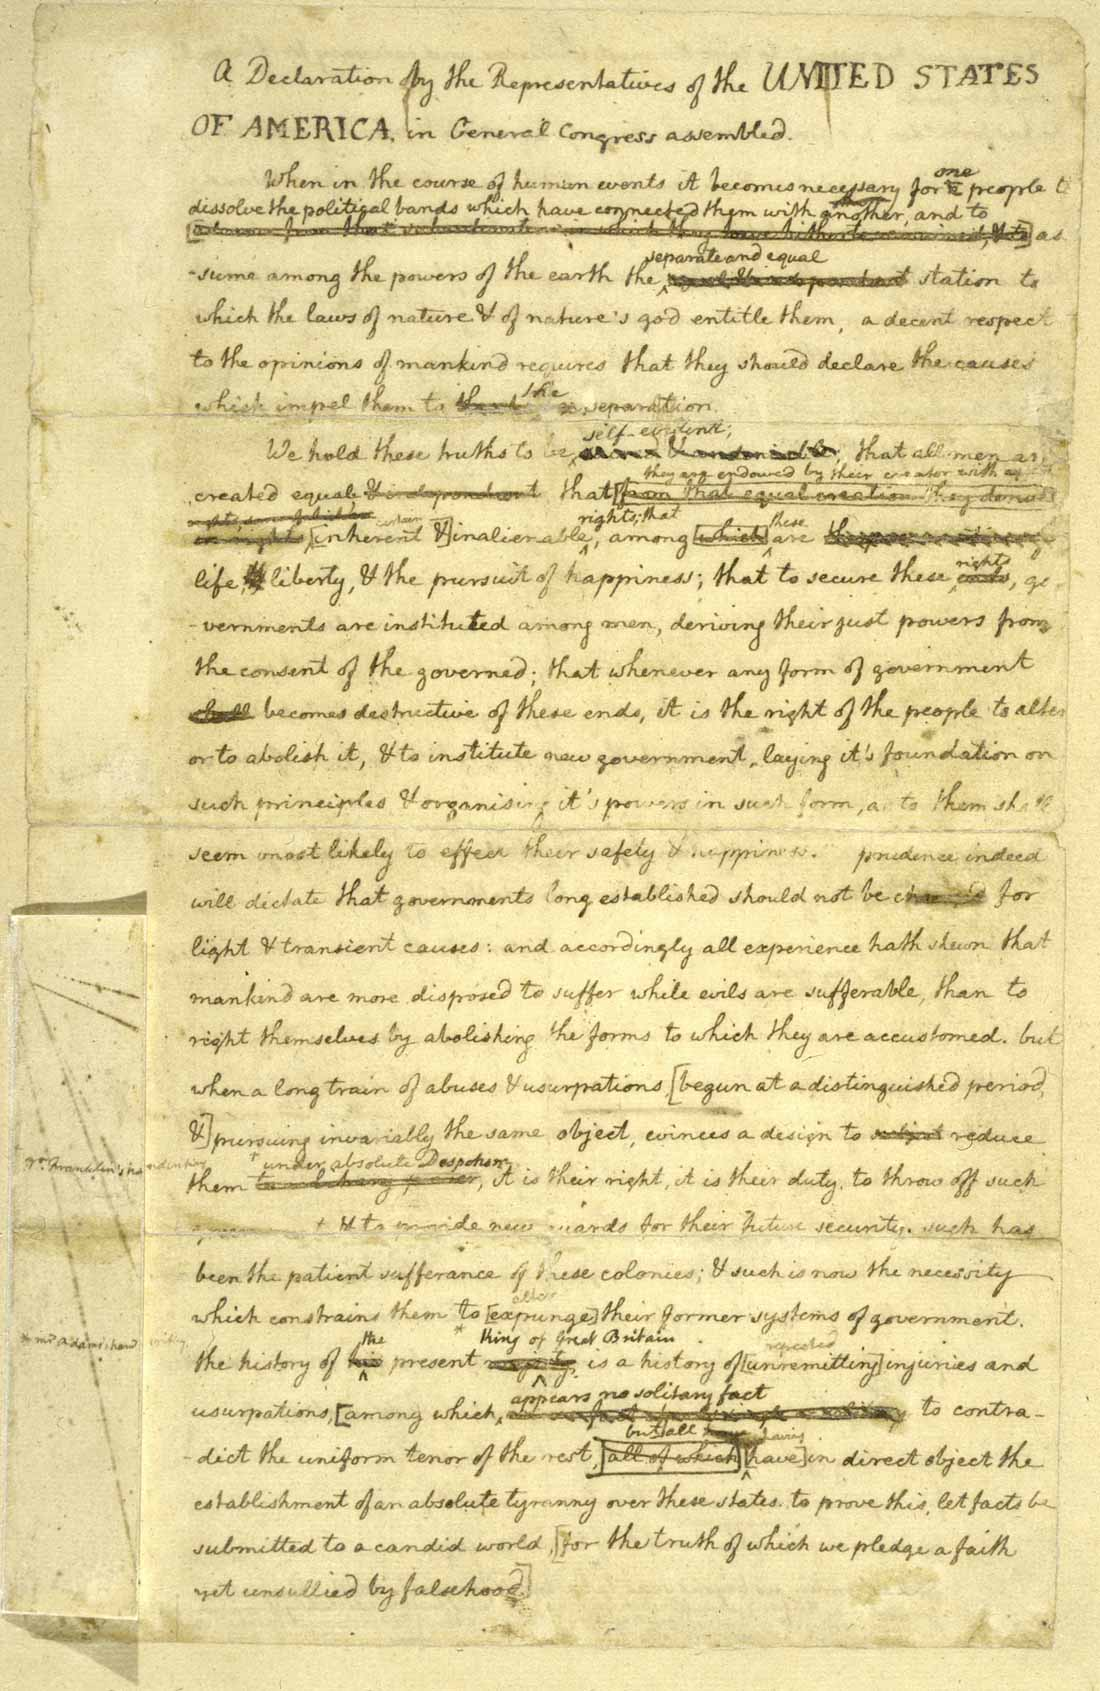 Original rought draft of the Declaration of Independence written out in longhand by Thomas Jefferson, featuring emendations by Benjamin Franklin and John Adams - Library of Congress Manuscripts Division